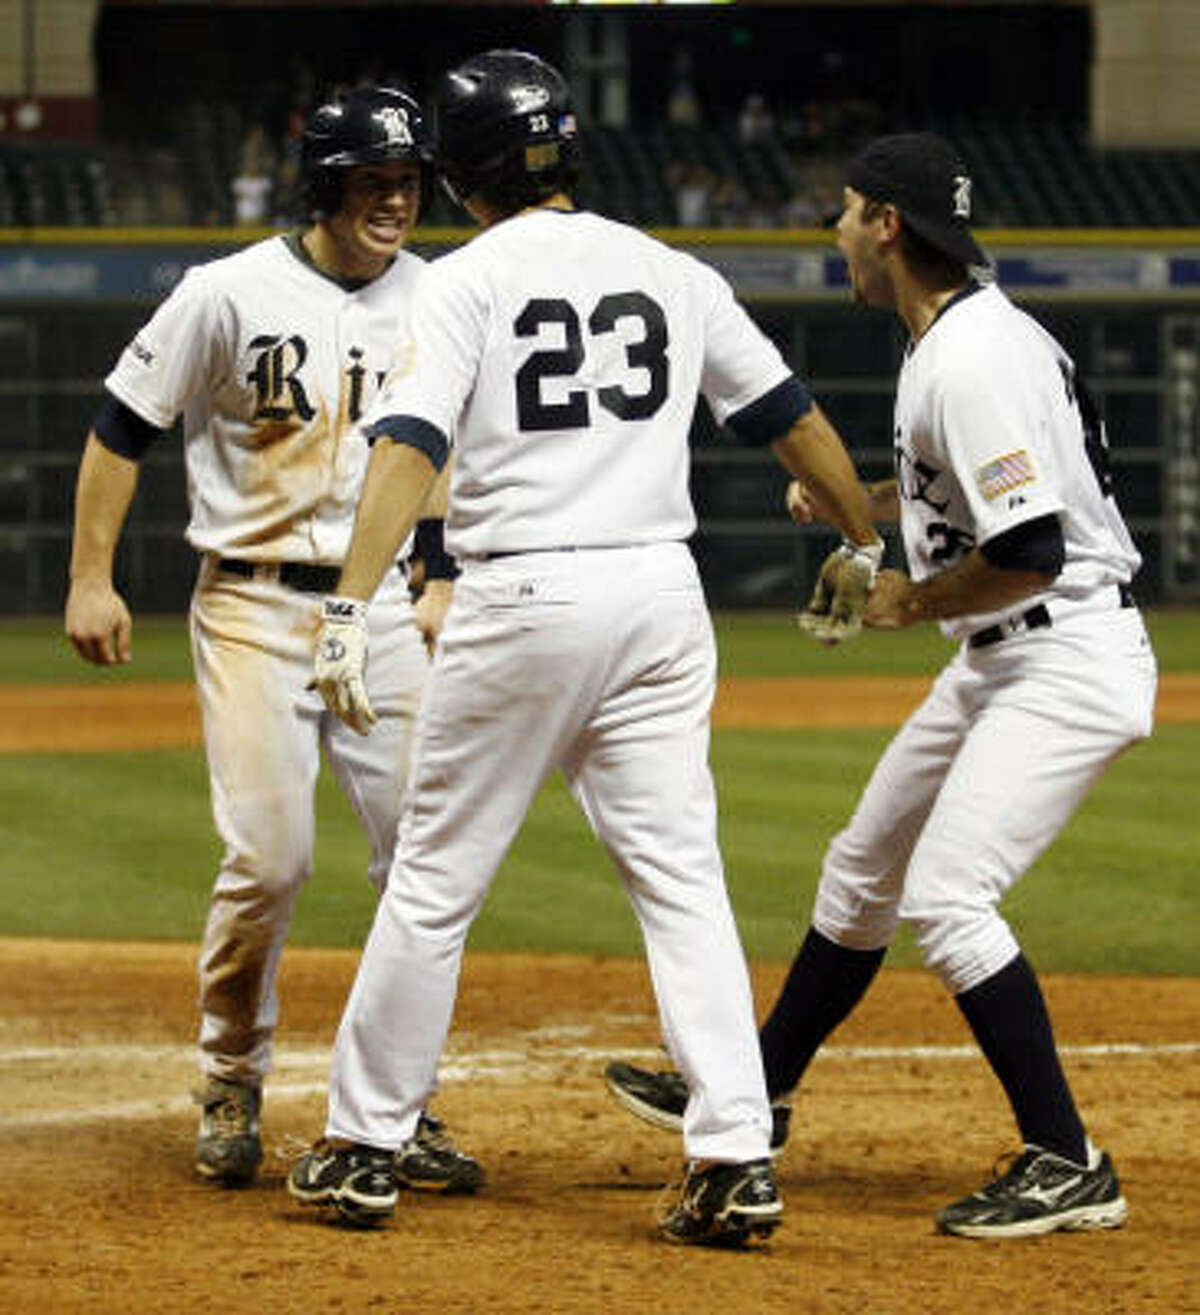 Rice 2B Michael Ratterree, left, is greeted by teammates after scoring the winning run off a hit by DH Chase McDowell (25) in the bottom of the ninth inning defeating TCU on the final night of the Houston College Classic.